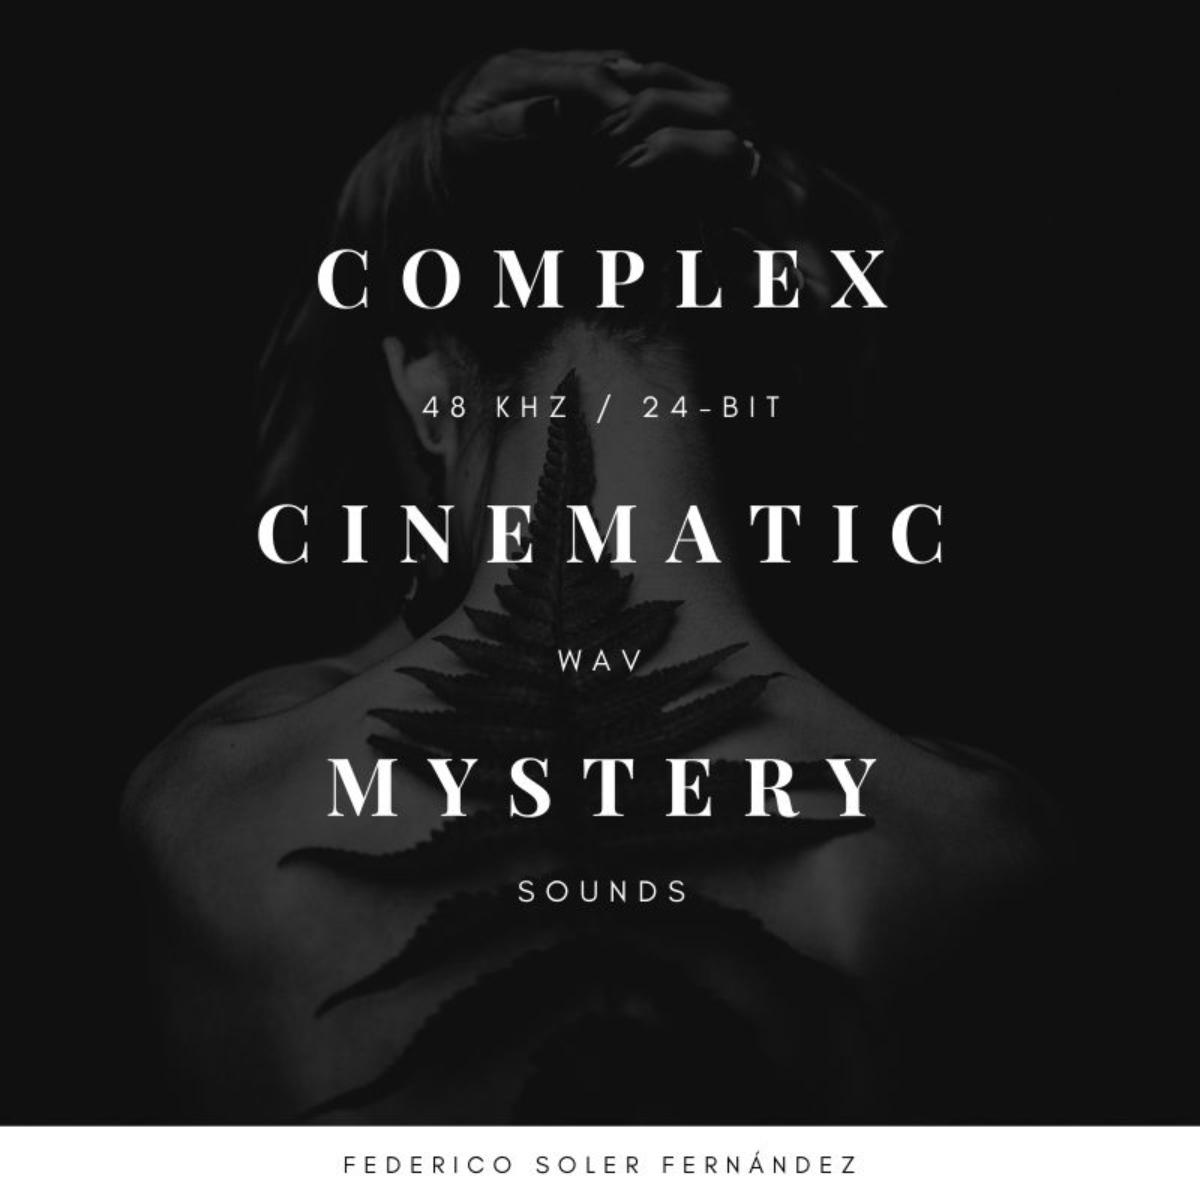 Complex Cinematic Mystery